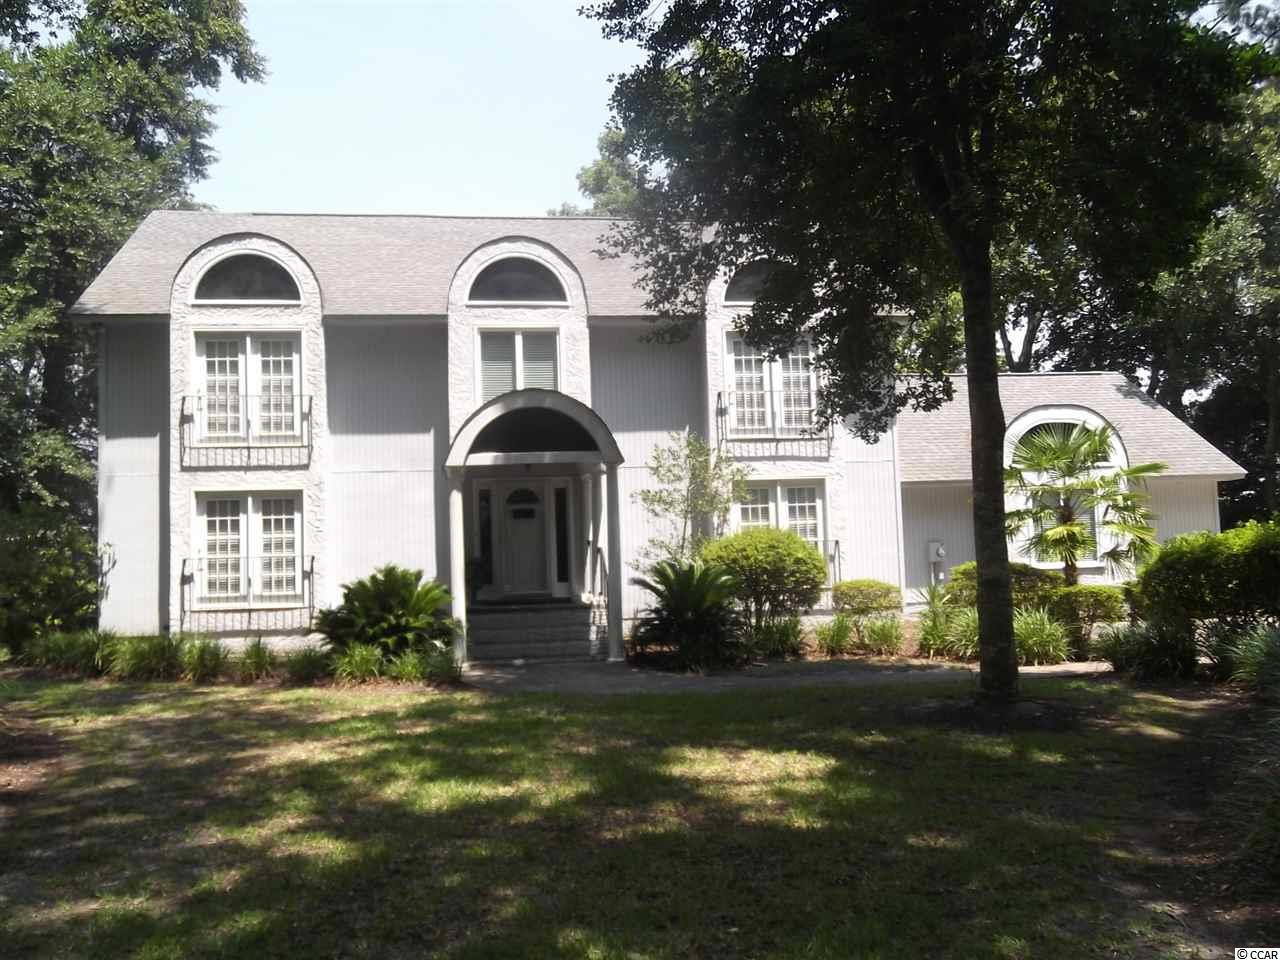 This is a very nice home in a very nice waterway community. Directly on the Intercoastal Waterway with great views. Watch the boats go by as you sit on a very large deck; also waterway views from the back of the house. Bulkhead put in a few years ago with a boat slip. This home is not in a flood zone; no flood insurance required. The lot sits up very high from the waterway. The home has a formal dining room, eat in kitchen, very large living room with a fireplace also a large den, a large wet bar with one bathroom downstairs. Very nice entry foyer. Upstairs are 3 bedrooms  and 3 bathrooms. The master bedroom is very large with a large sitting area looking at the water way with a balcony also has a fireplace in the master bedroom with a wet bar, a large master bath with a jetted tub. There is another large bedroom that looks over the water way with a balcony. Then another good size  bedroom, laundry room upstairs with the bedrooms. Over size 2 car garage. The community is located near everything and anything anyone would need or want to do. Many restaurants near by also shopping, many golf courses and only a few minutes to the beach. This is a well built home with a few upgrades would make a great home. Very private setting which you will enjoy. So do yourself a favor and view this home.  I do not think you will be disappointed.